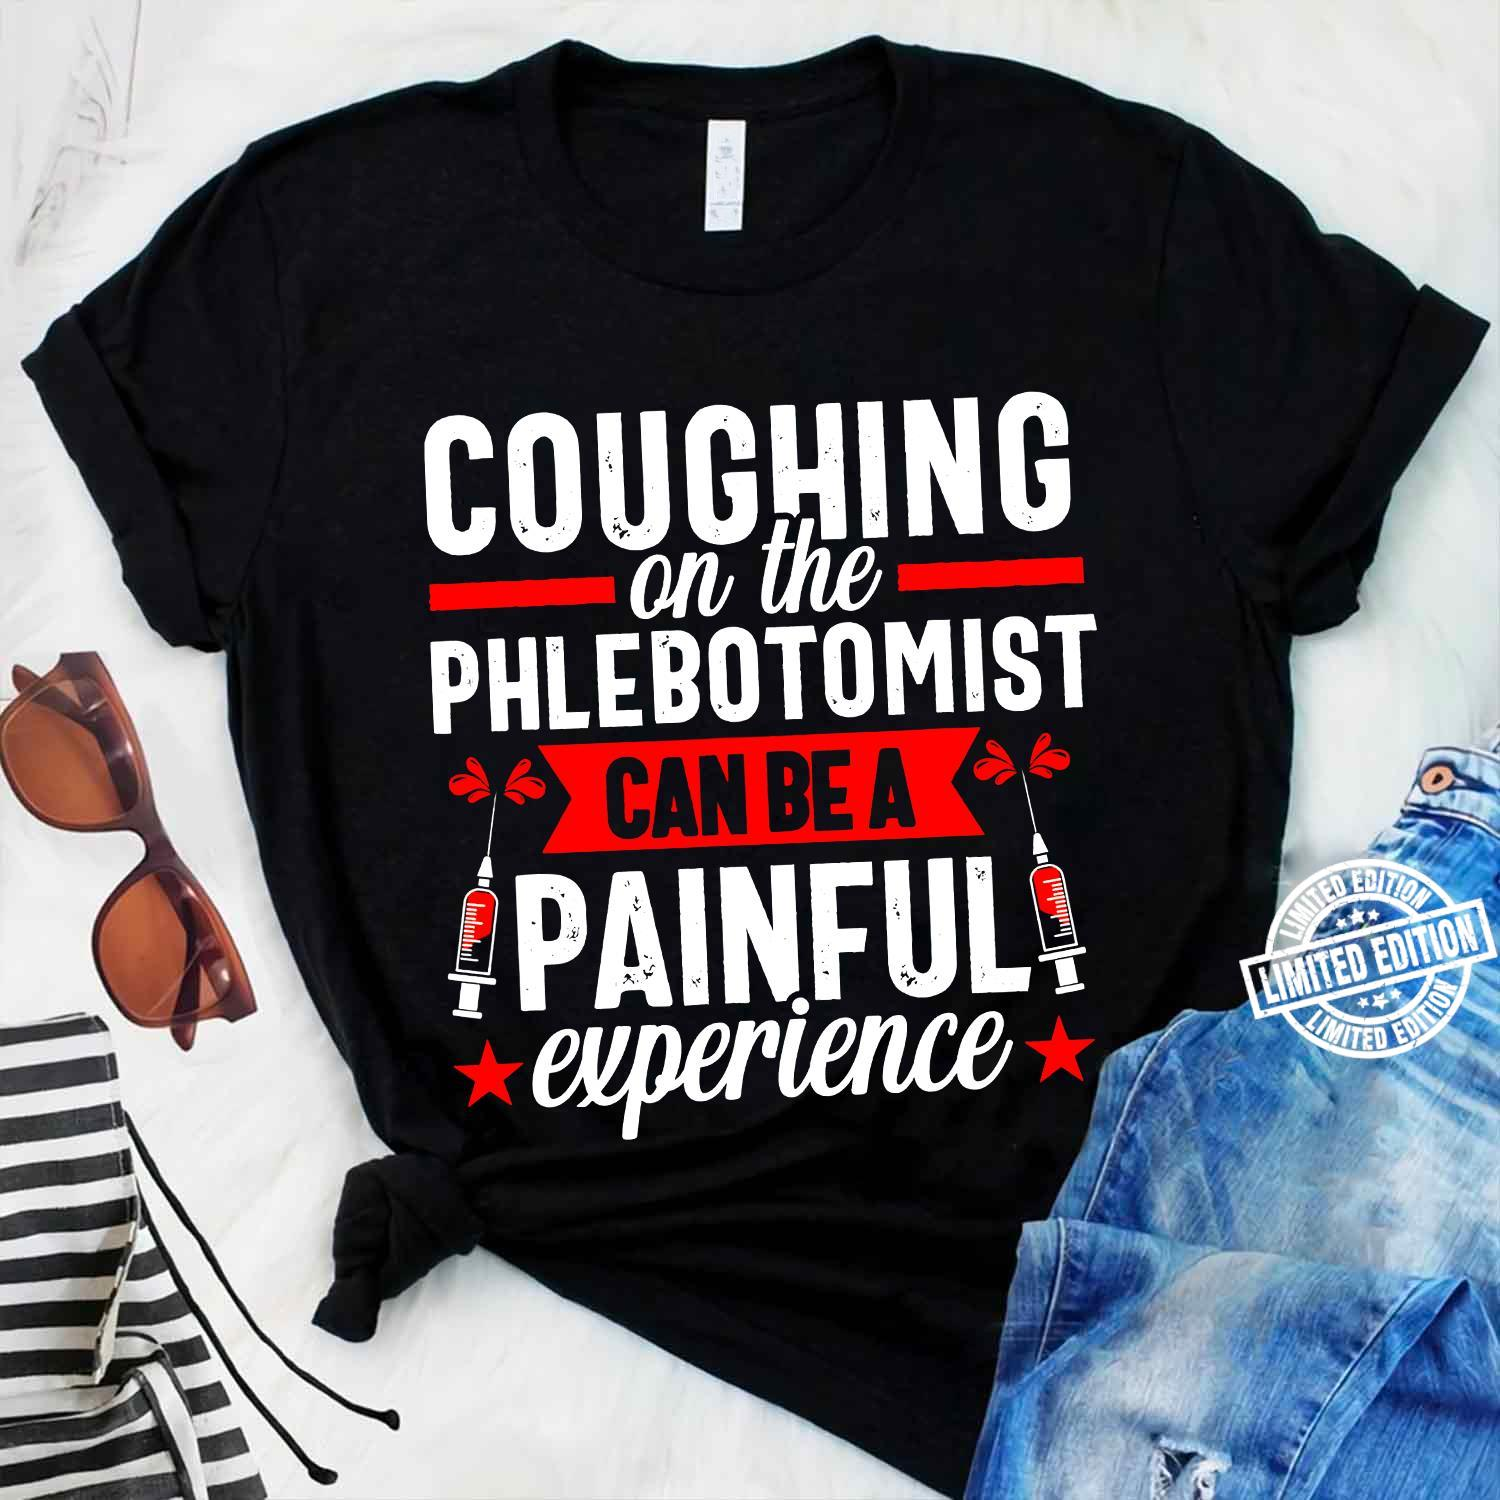 Coughing on the phlebotomist can be a painful experience shirt